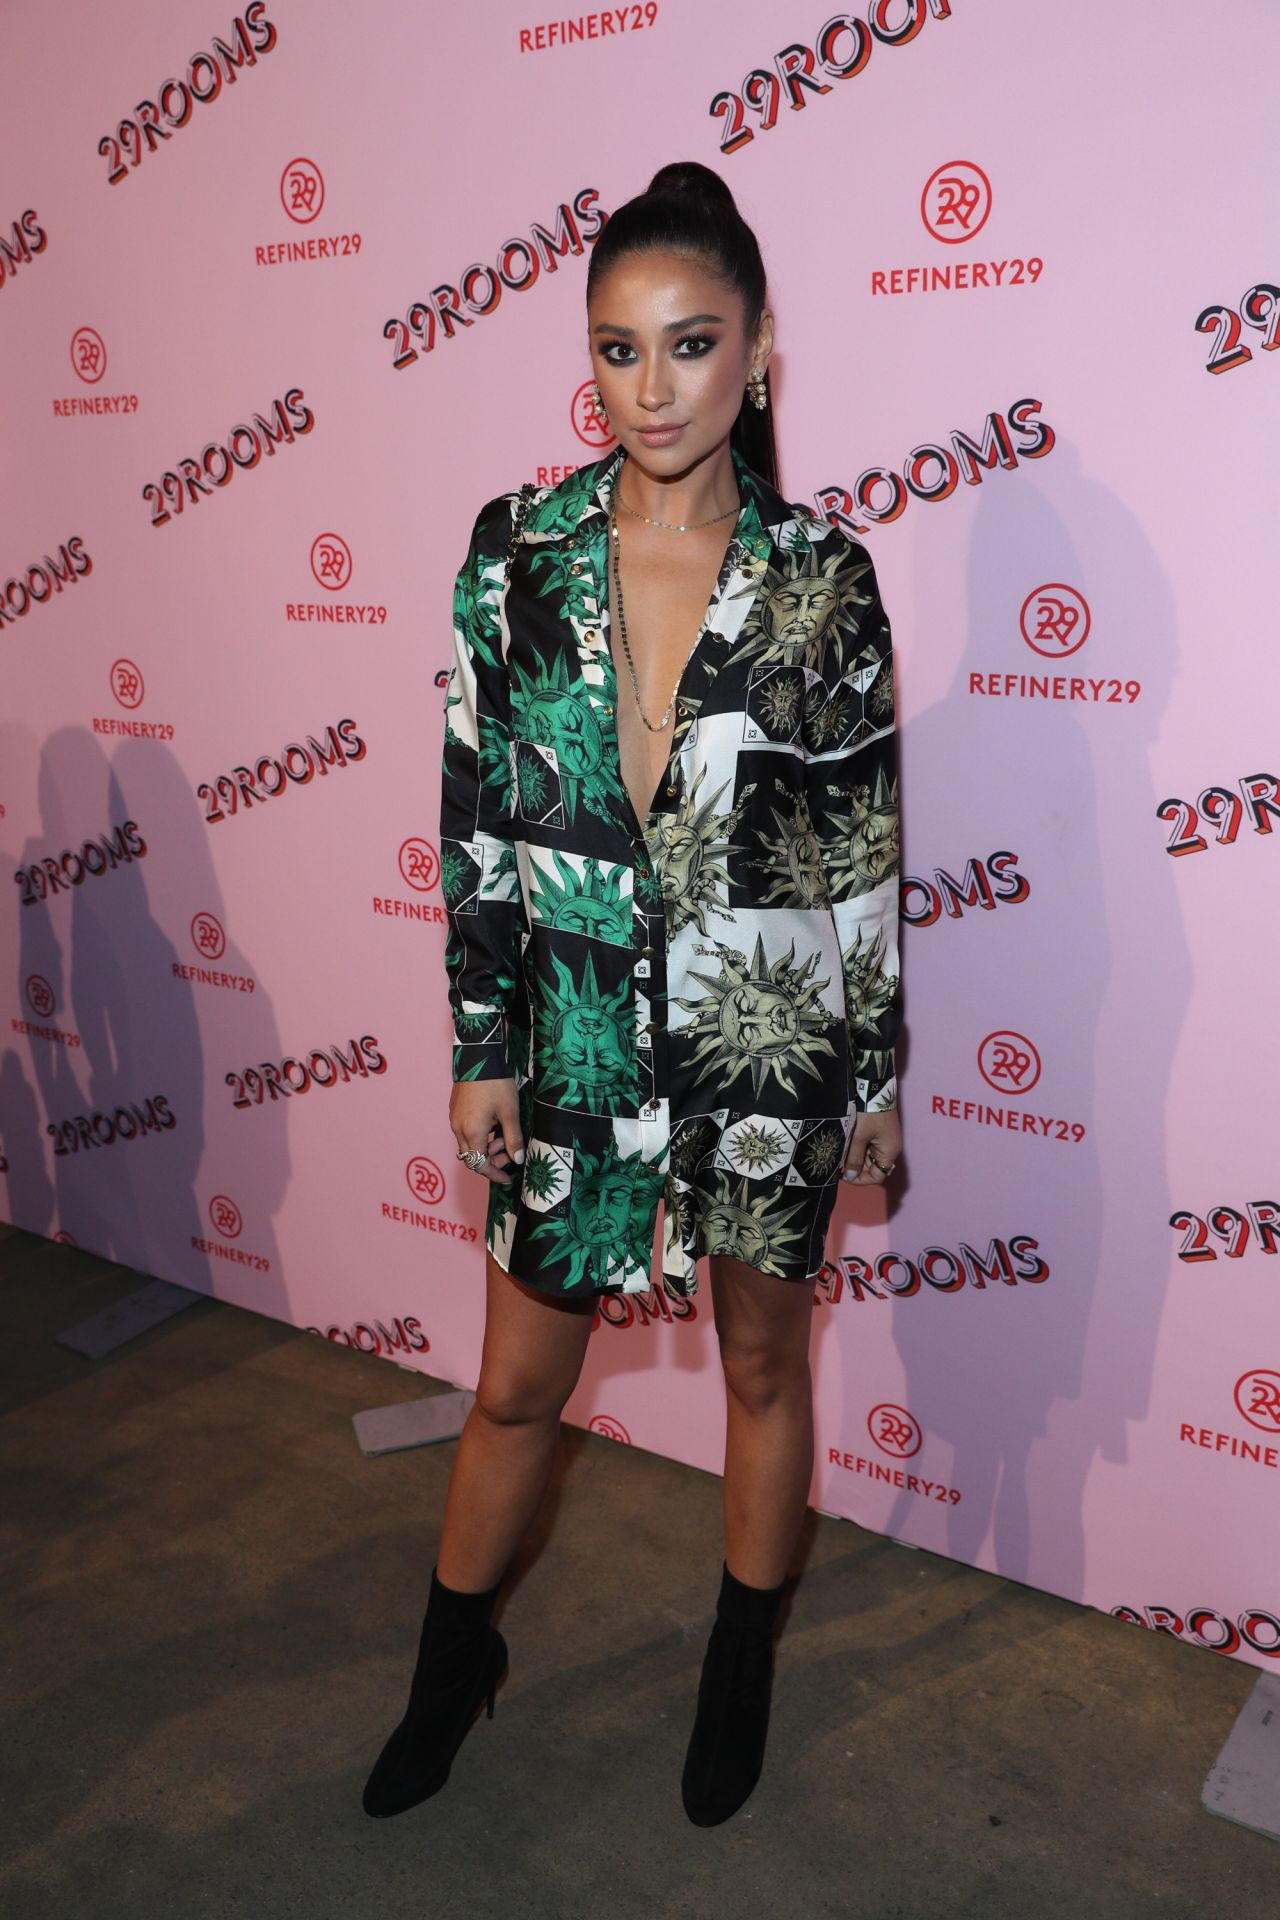 http://celebmafia.com/wp-content/uploads/2017/09/shay-mitchell-refinery29-third-annual-29rooms-turn-it-into-art-ny-09-07-2017-1.jpg